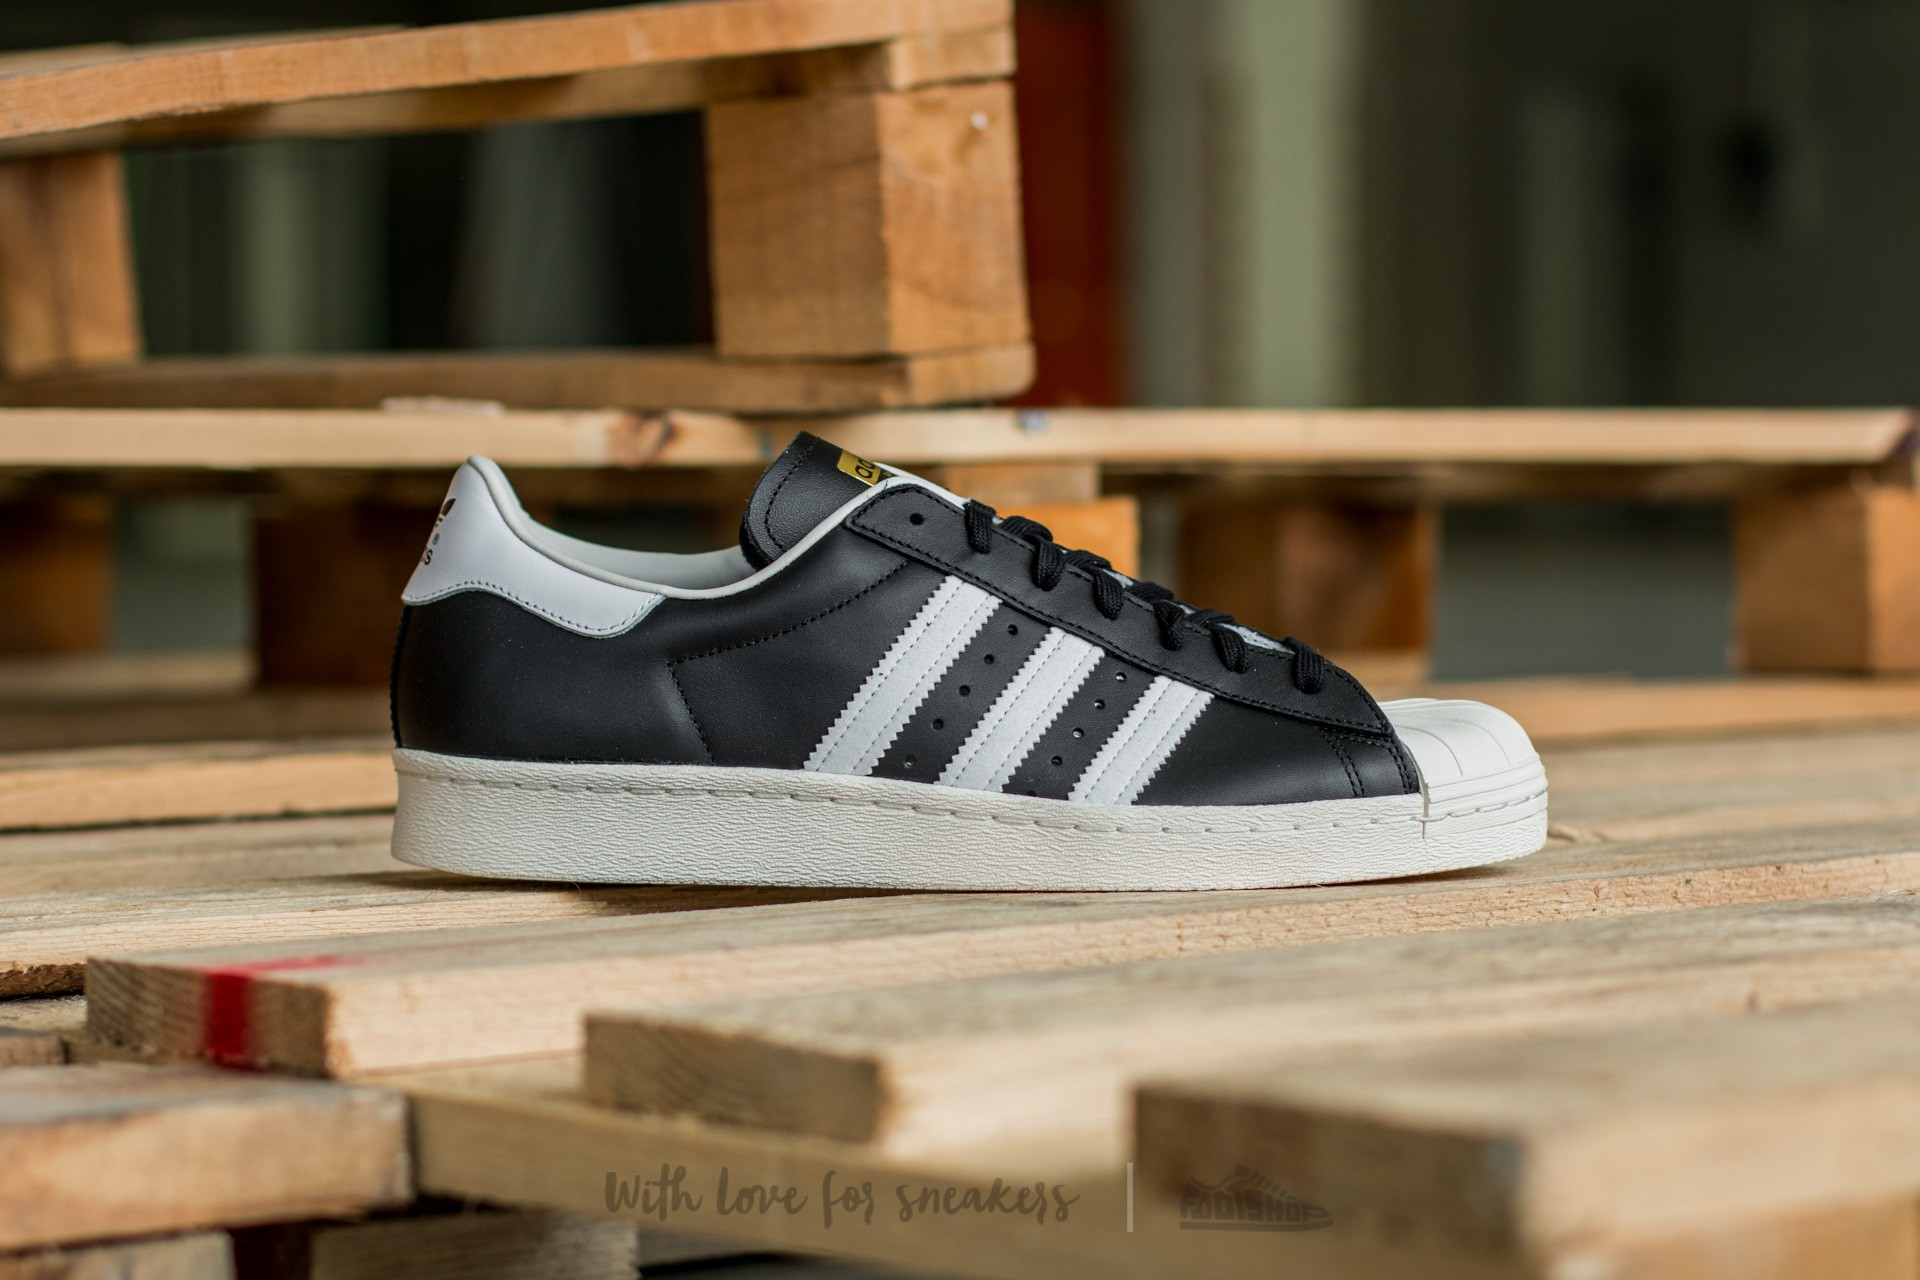 new arrival 36315 ba479 adidas Superstar 80s Black1 Wht Chalk2 at a great price 110 € buy at